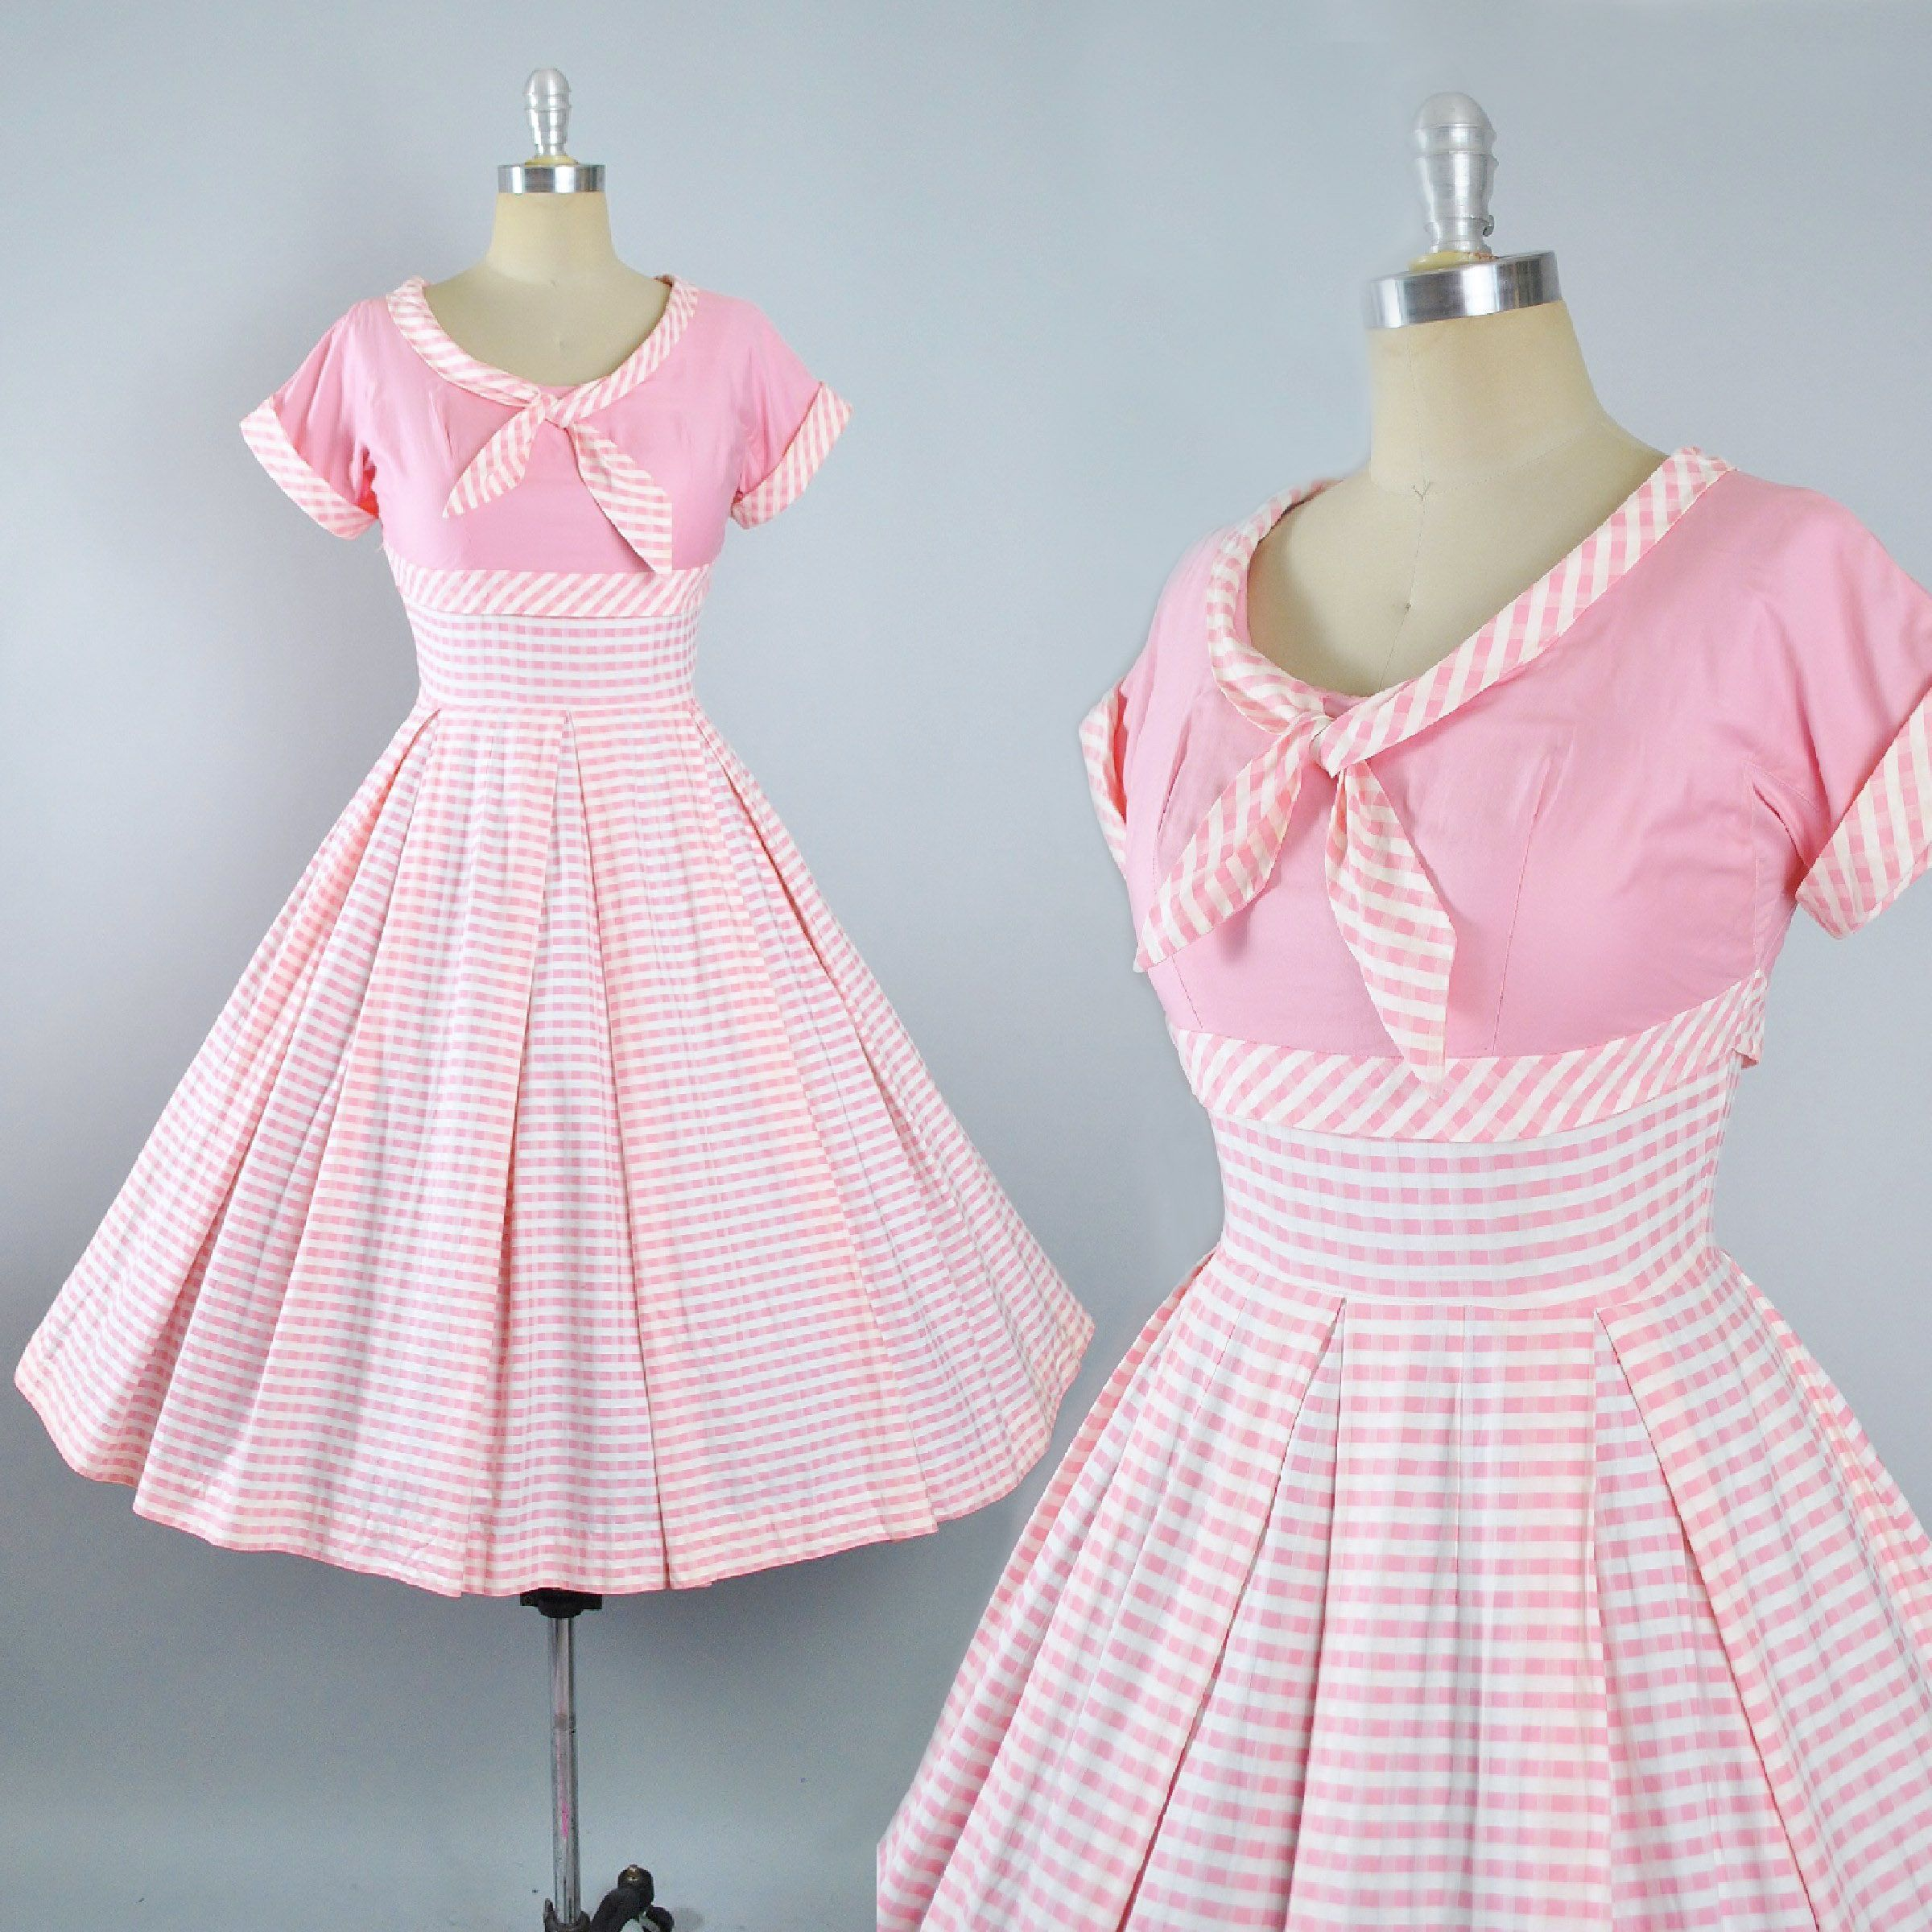 Vintage 50s Dress / 1950s Cotton Sundress White PINK STRIPES Full ...